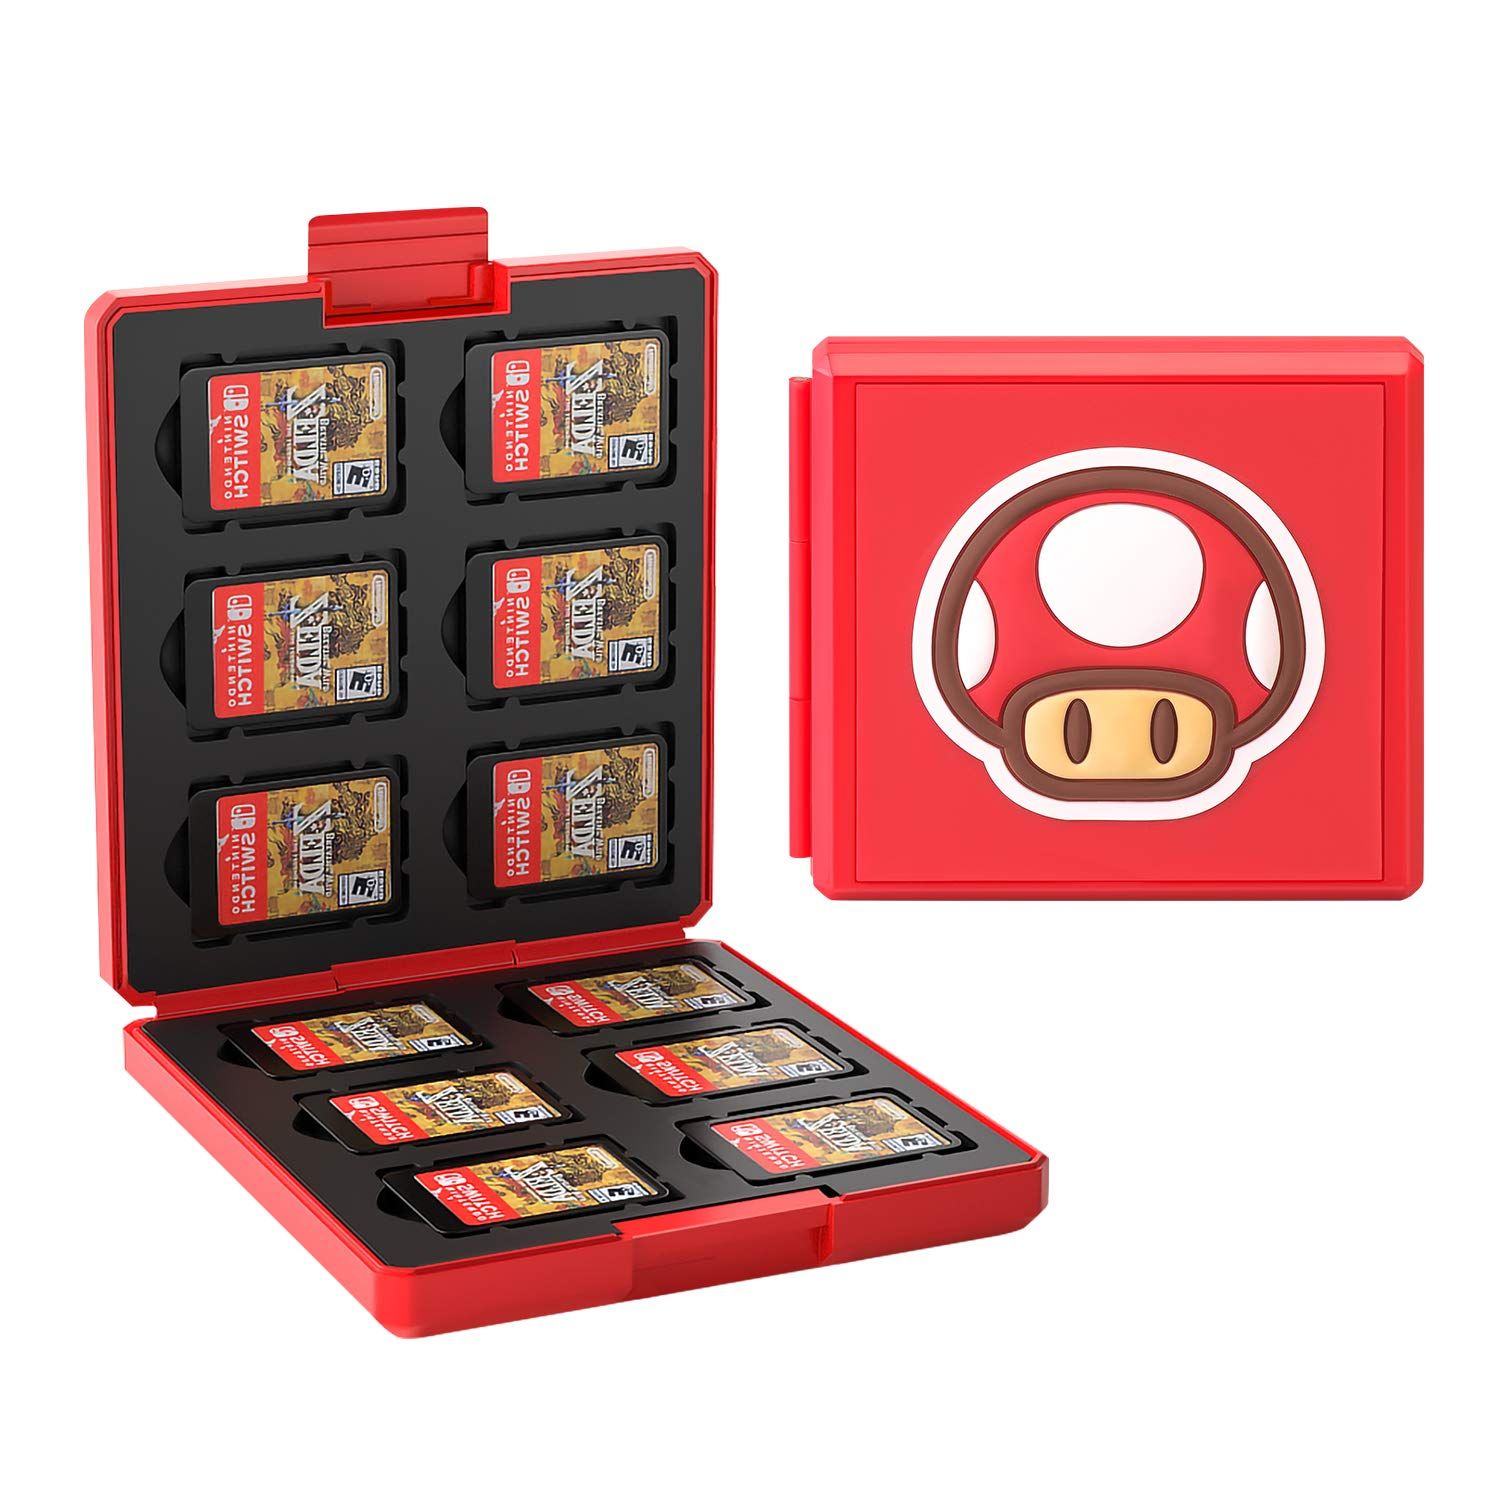 JINGDU Game Card Case for Nintendo Switch,Portable & Thin Hard Shell Box, Protective Shockproof Cartridge Holder Carrying Storage Case Box with 12 Cartridge Slots for Switch NS NX,Red Mushroom